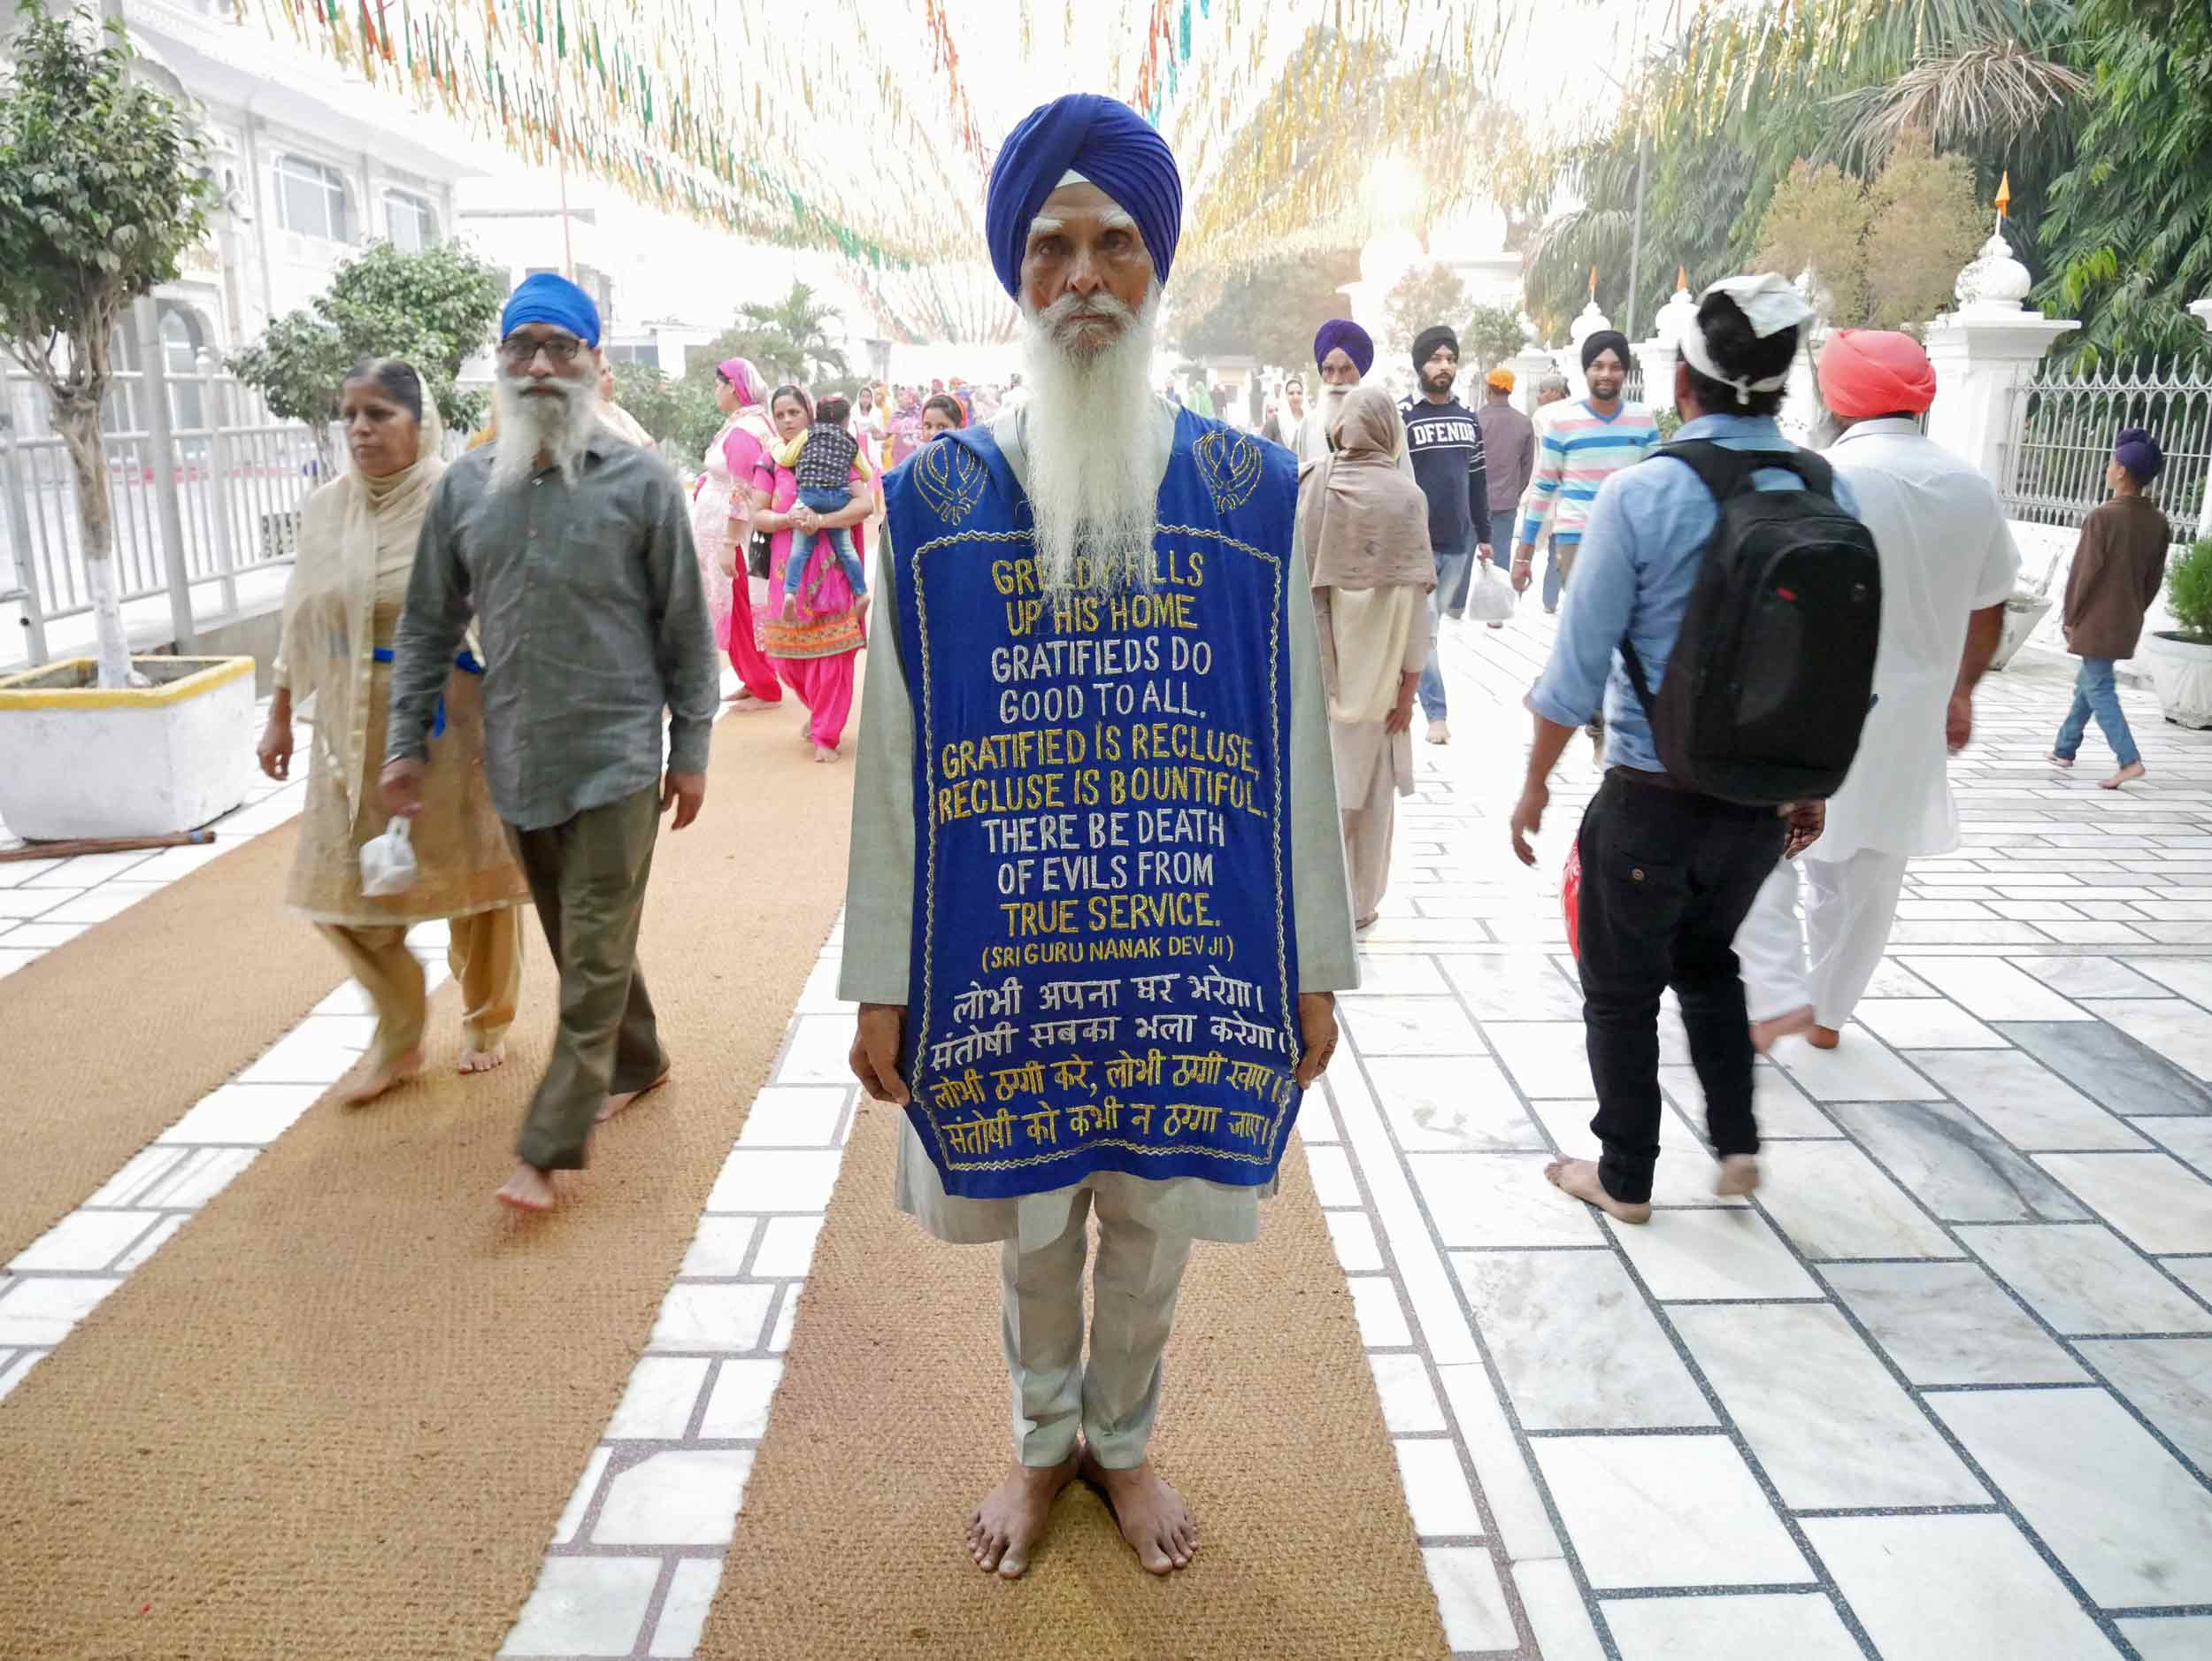 In the comings and goings of thousands of pilgrims, this man requested we take a photo of his message.